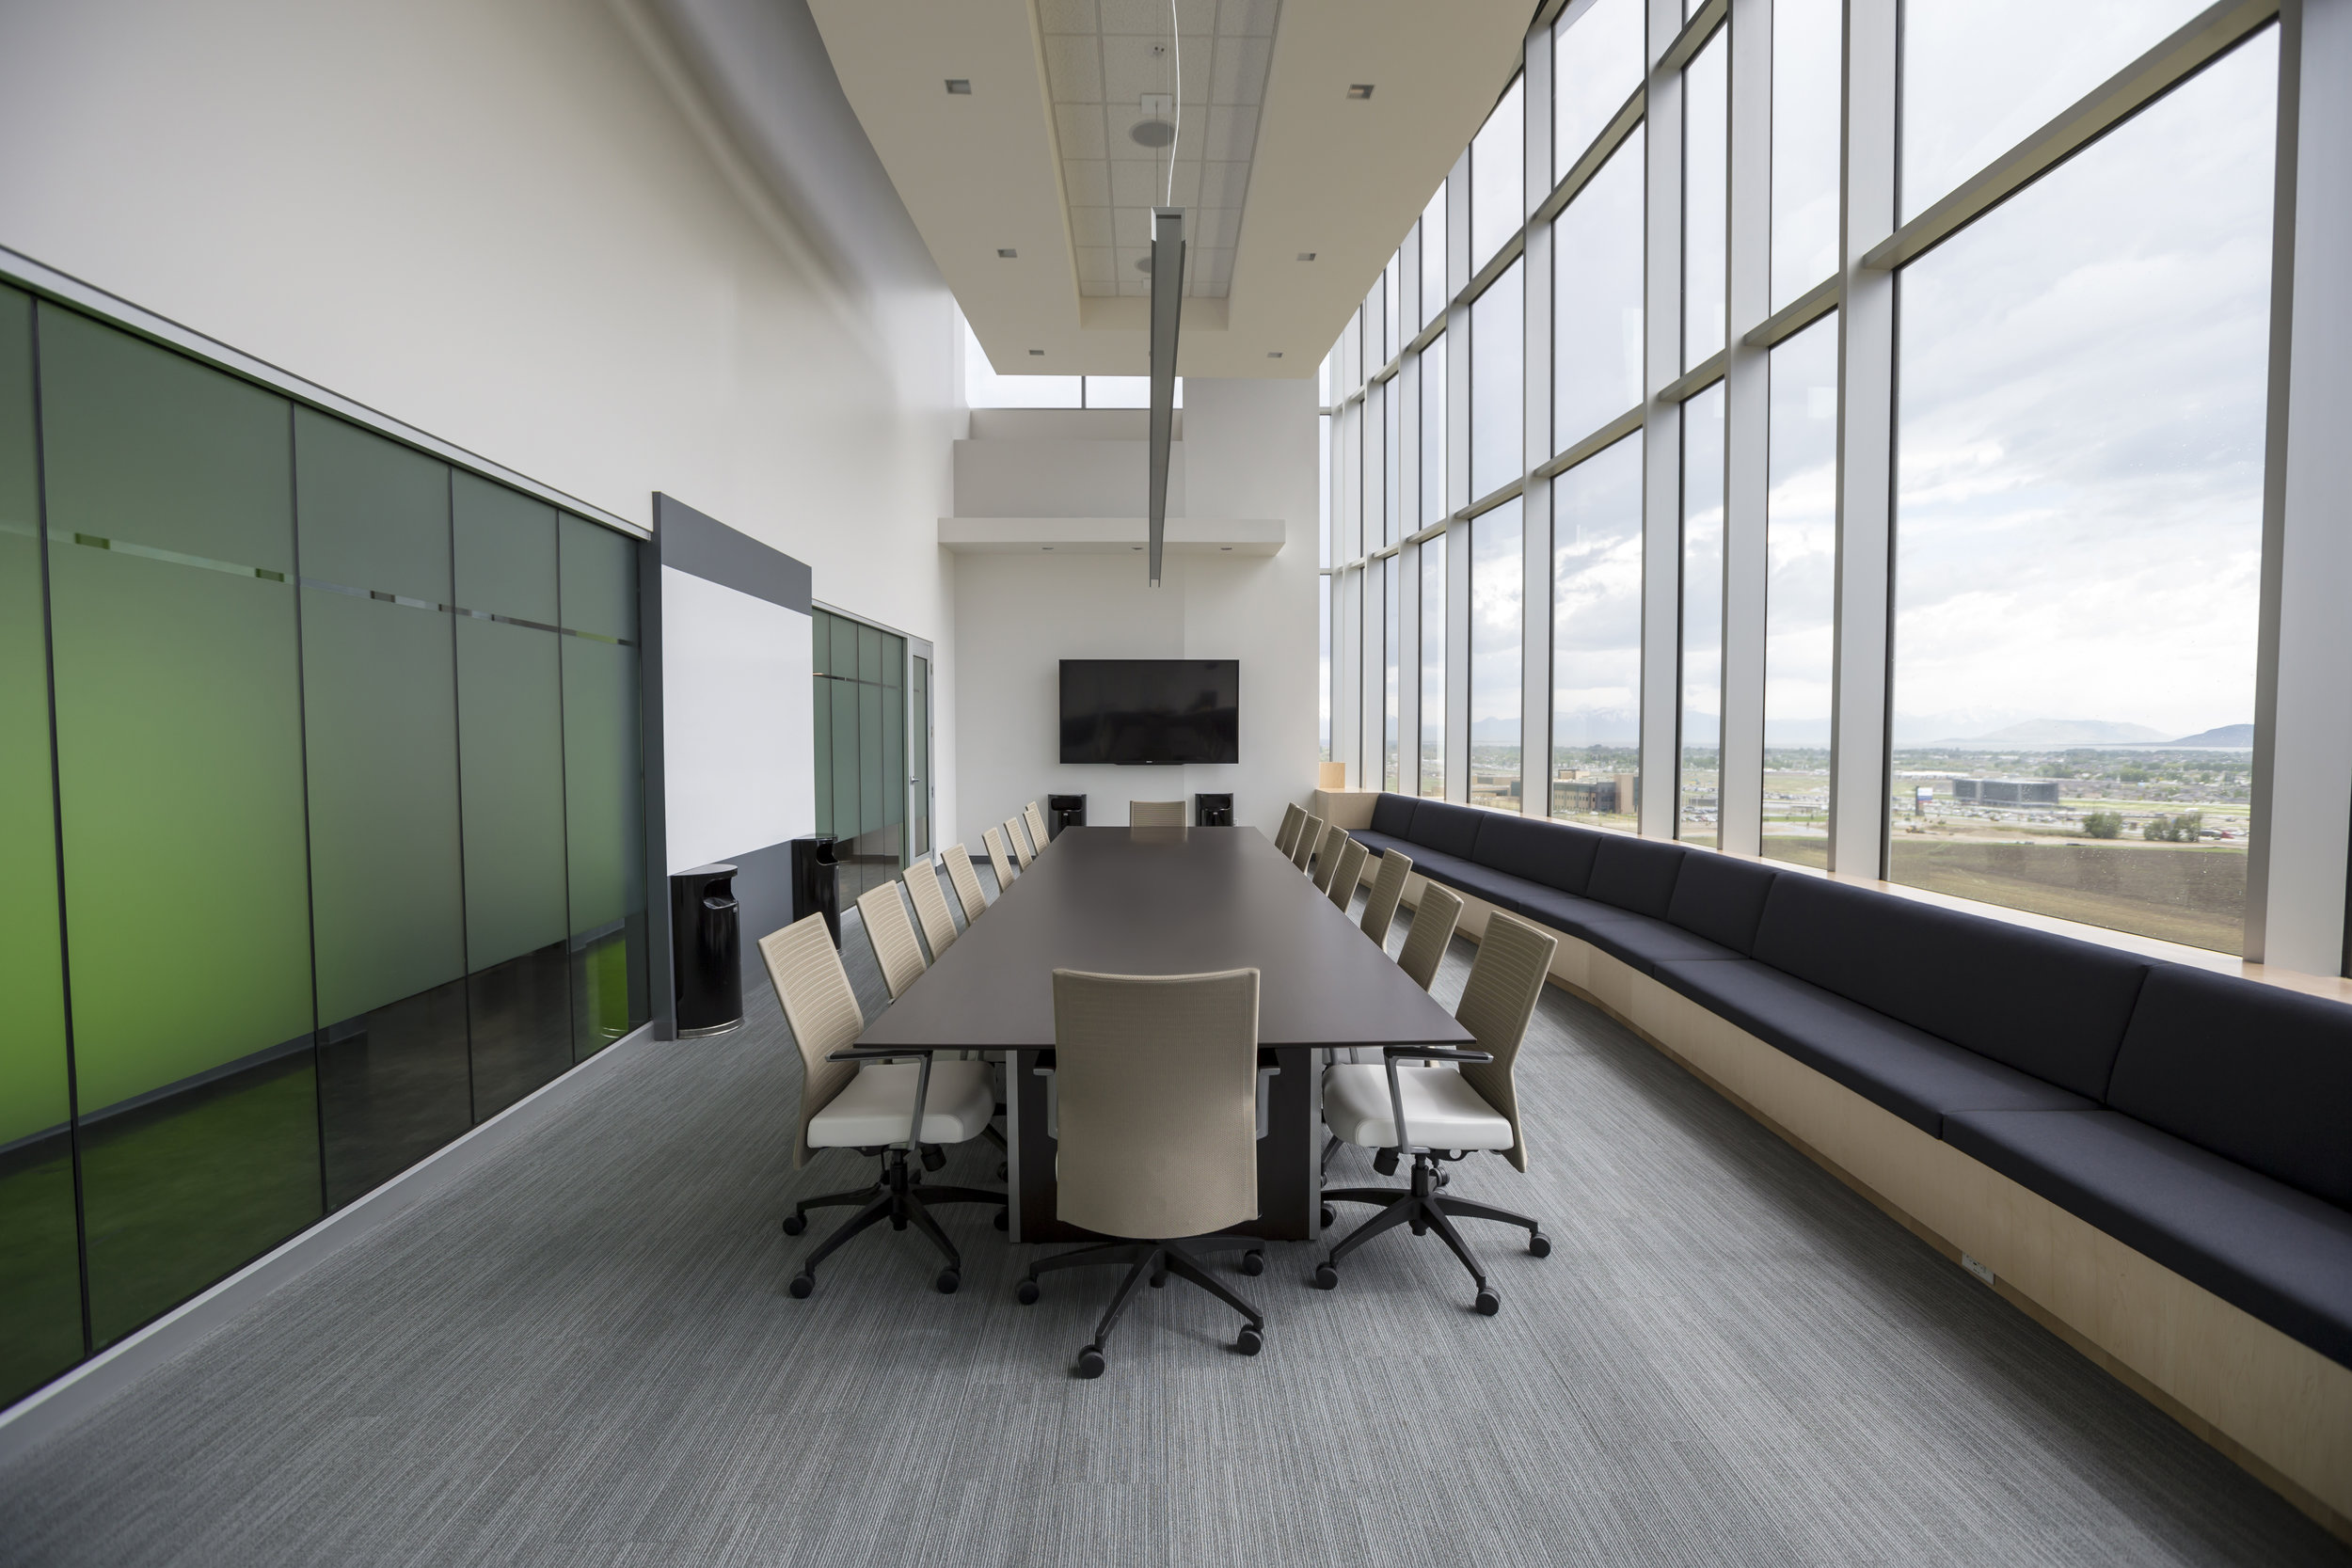 Board of Directors - Our Board of Directors consists of the President, Past-President, President-Elect, Finance Chair, Bylaws Chair, Governmental Affairs Director, MLS Chair, and two at large positions